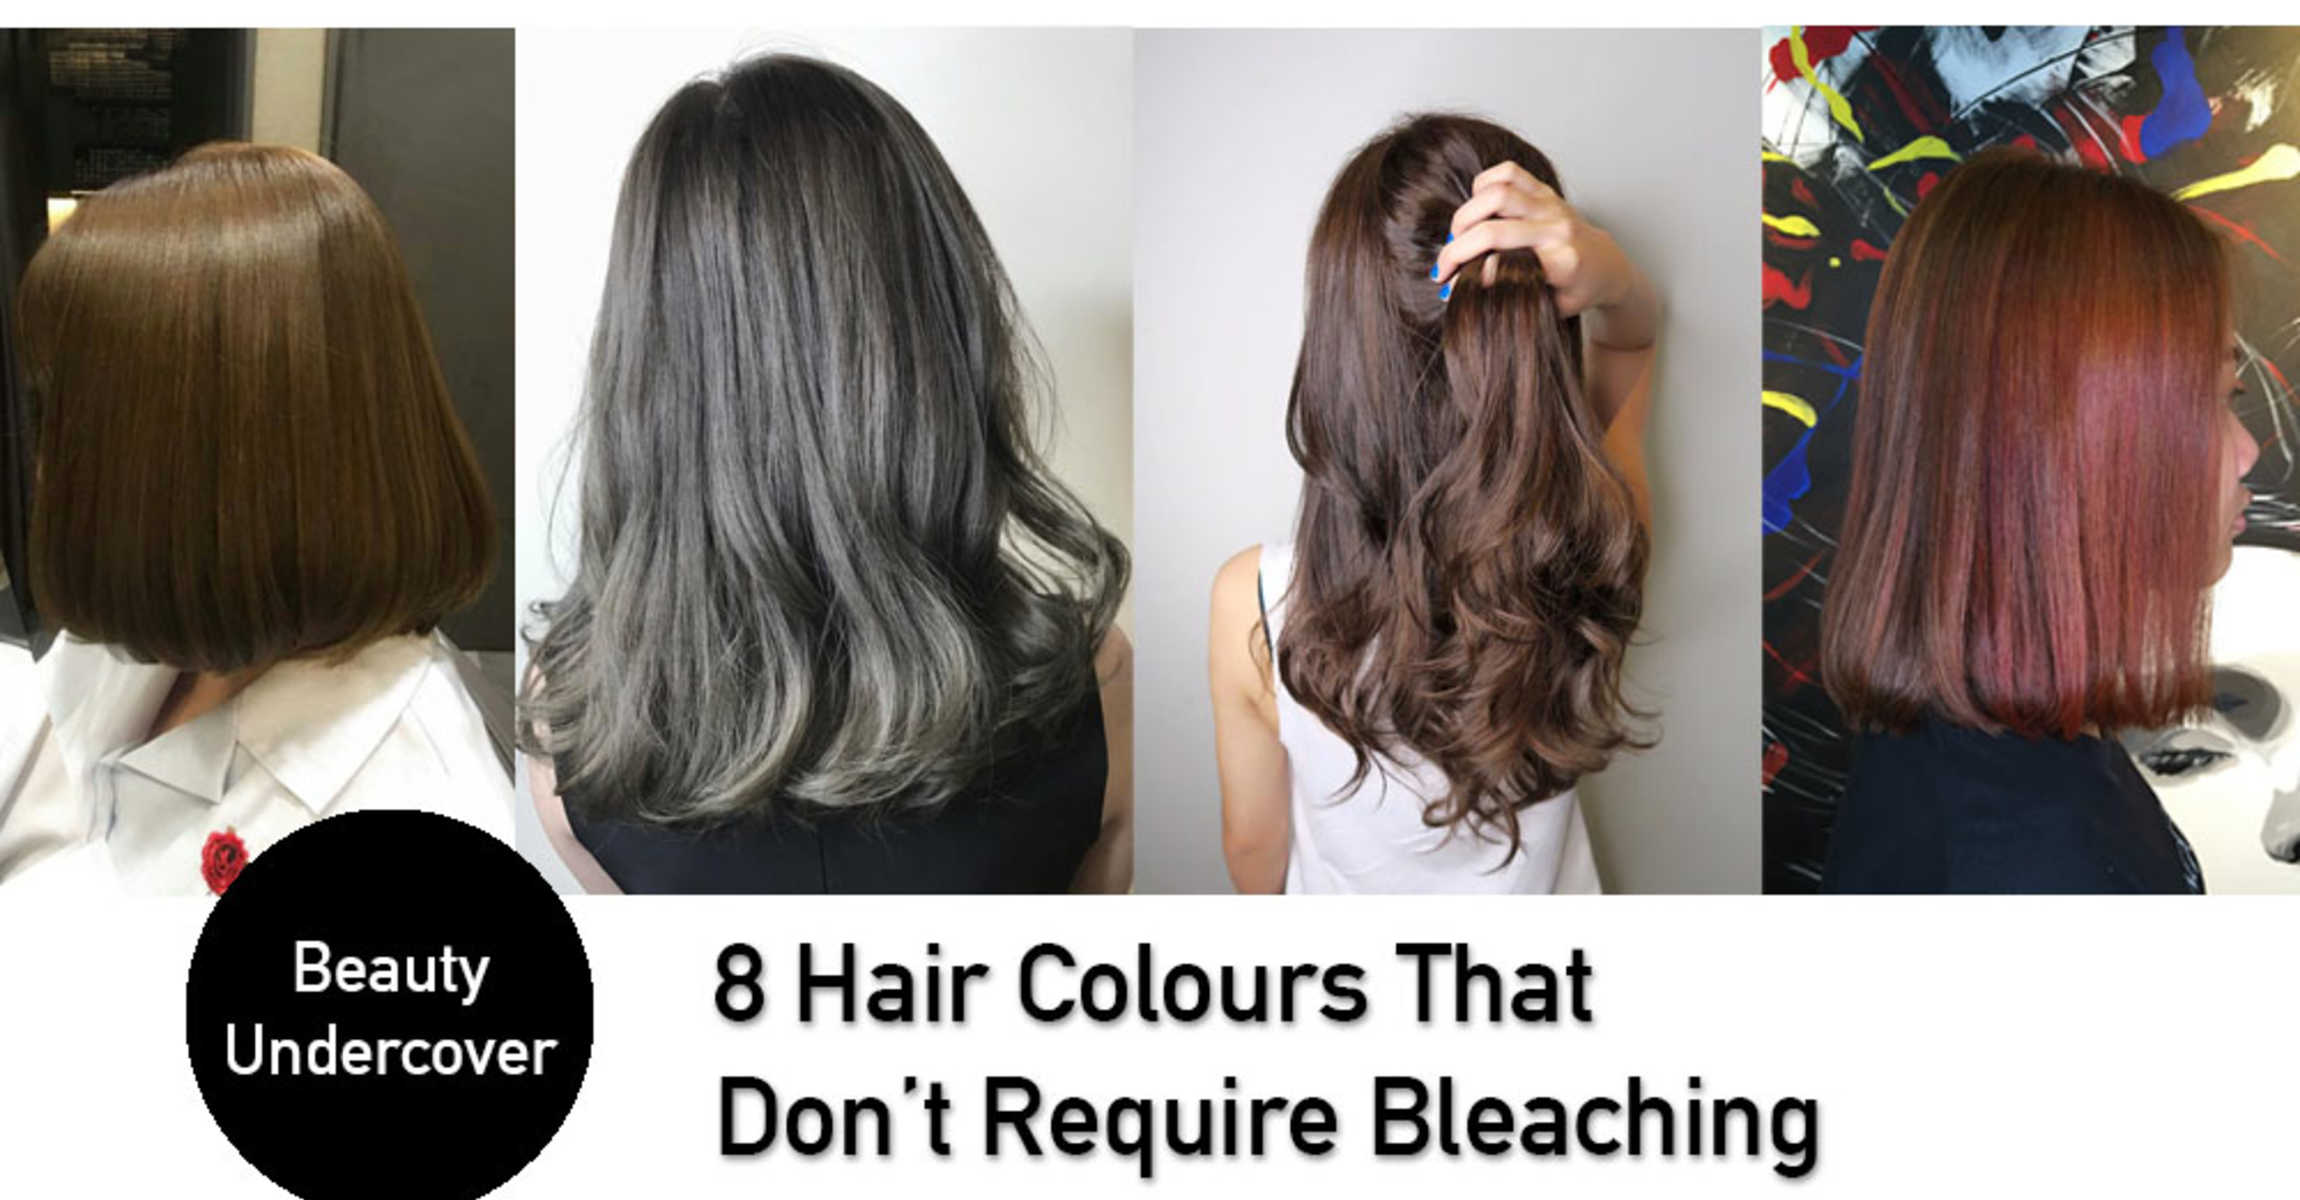 Trendy Hair Colours That Do NOT Require Bleaching in Singapore!